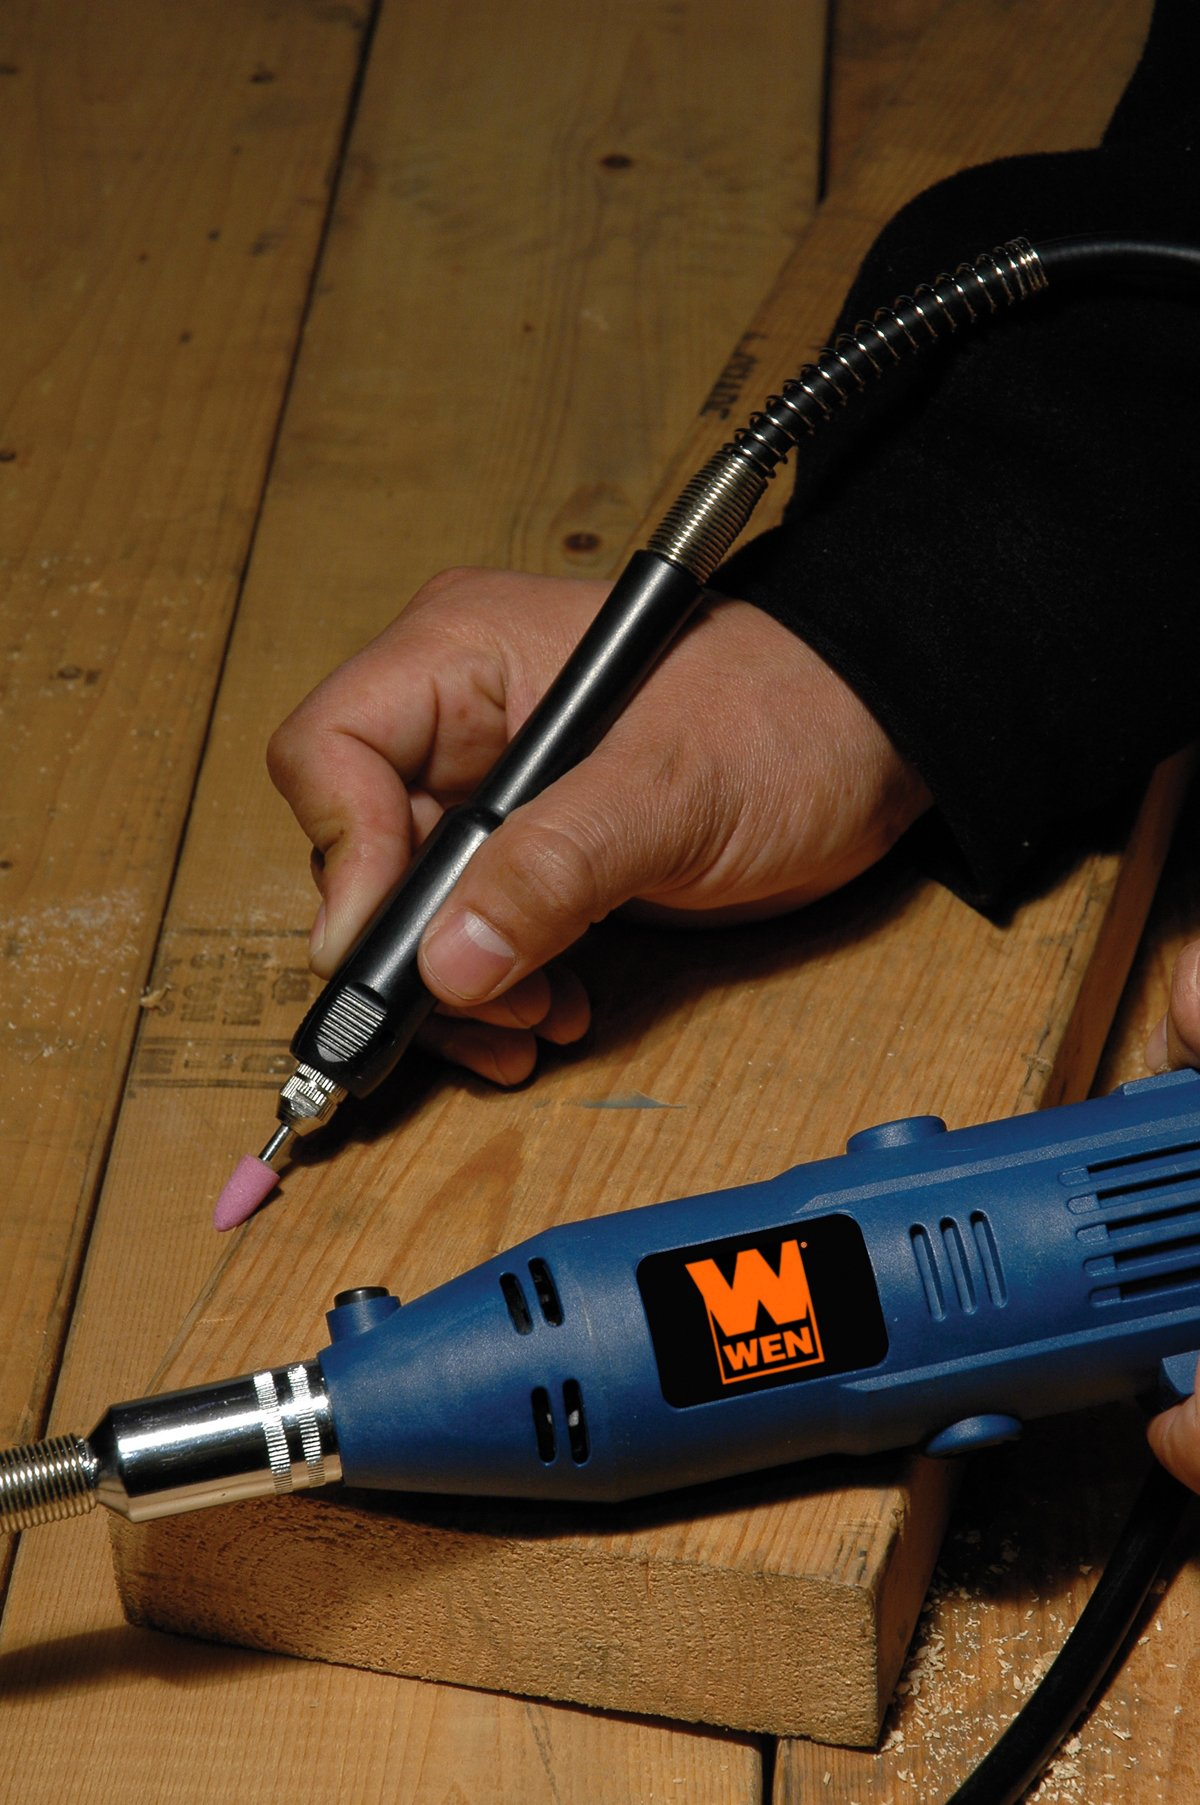 WEN 2305 Rotary Tool Kit with Flex Shaft by WEN (Image #5)